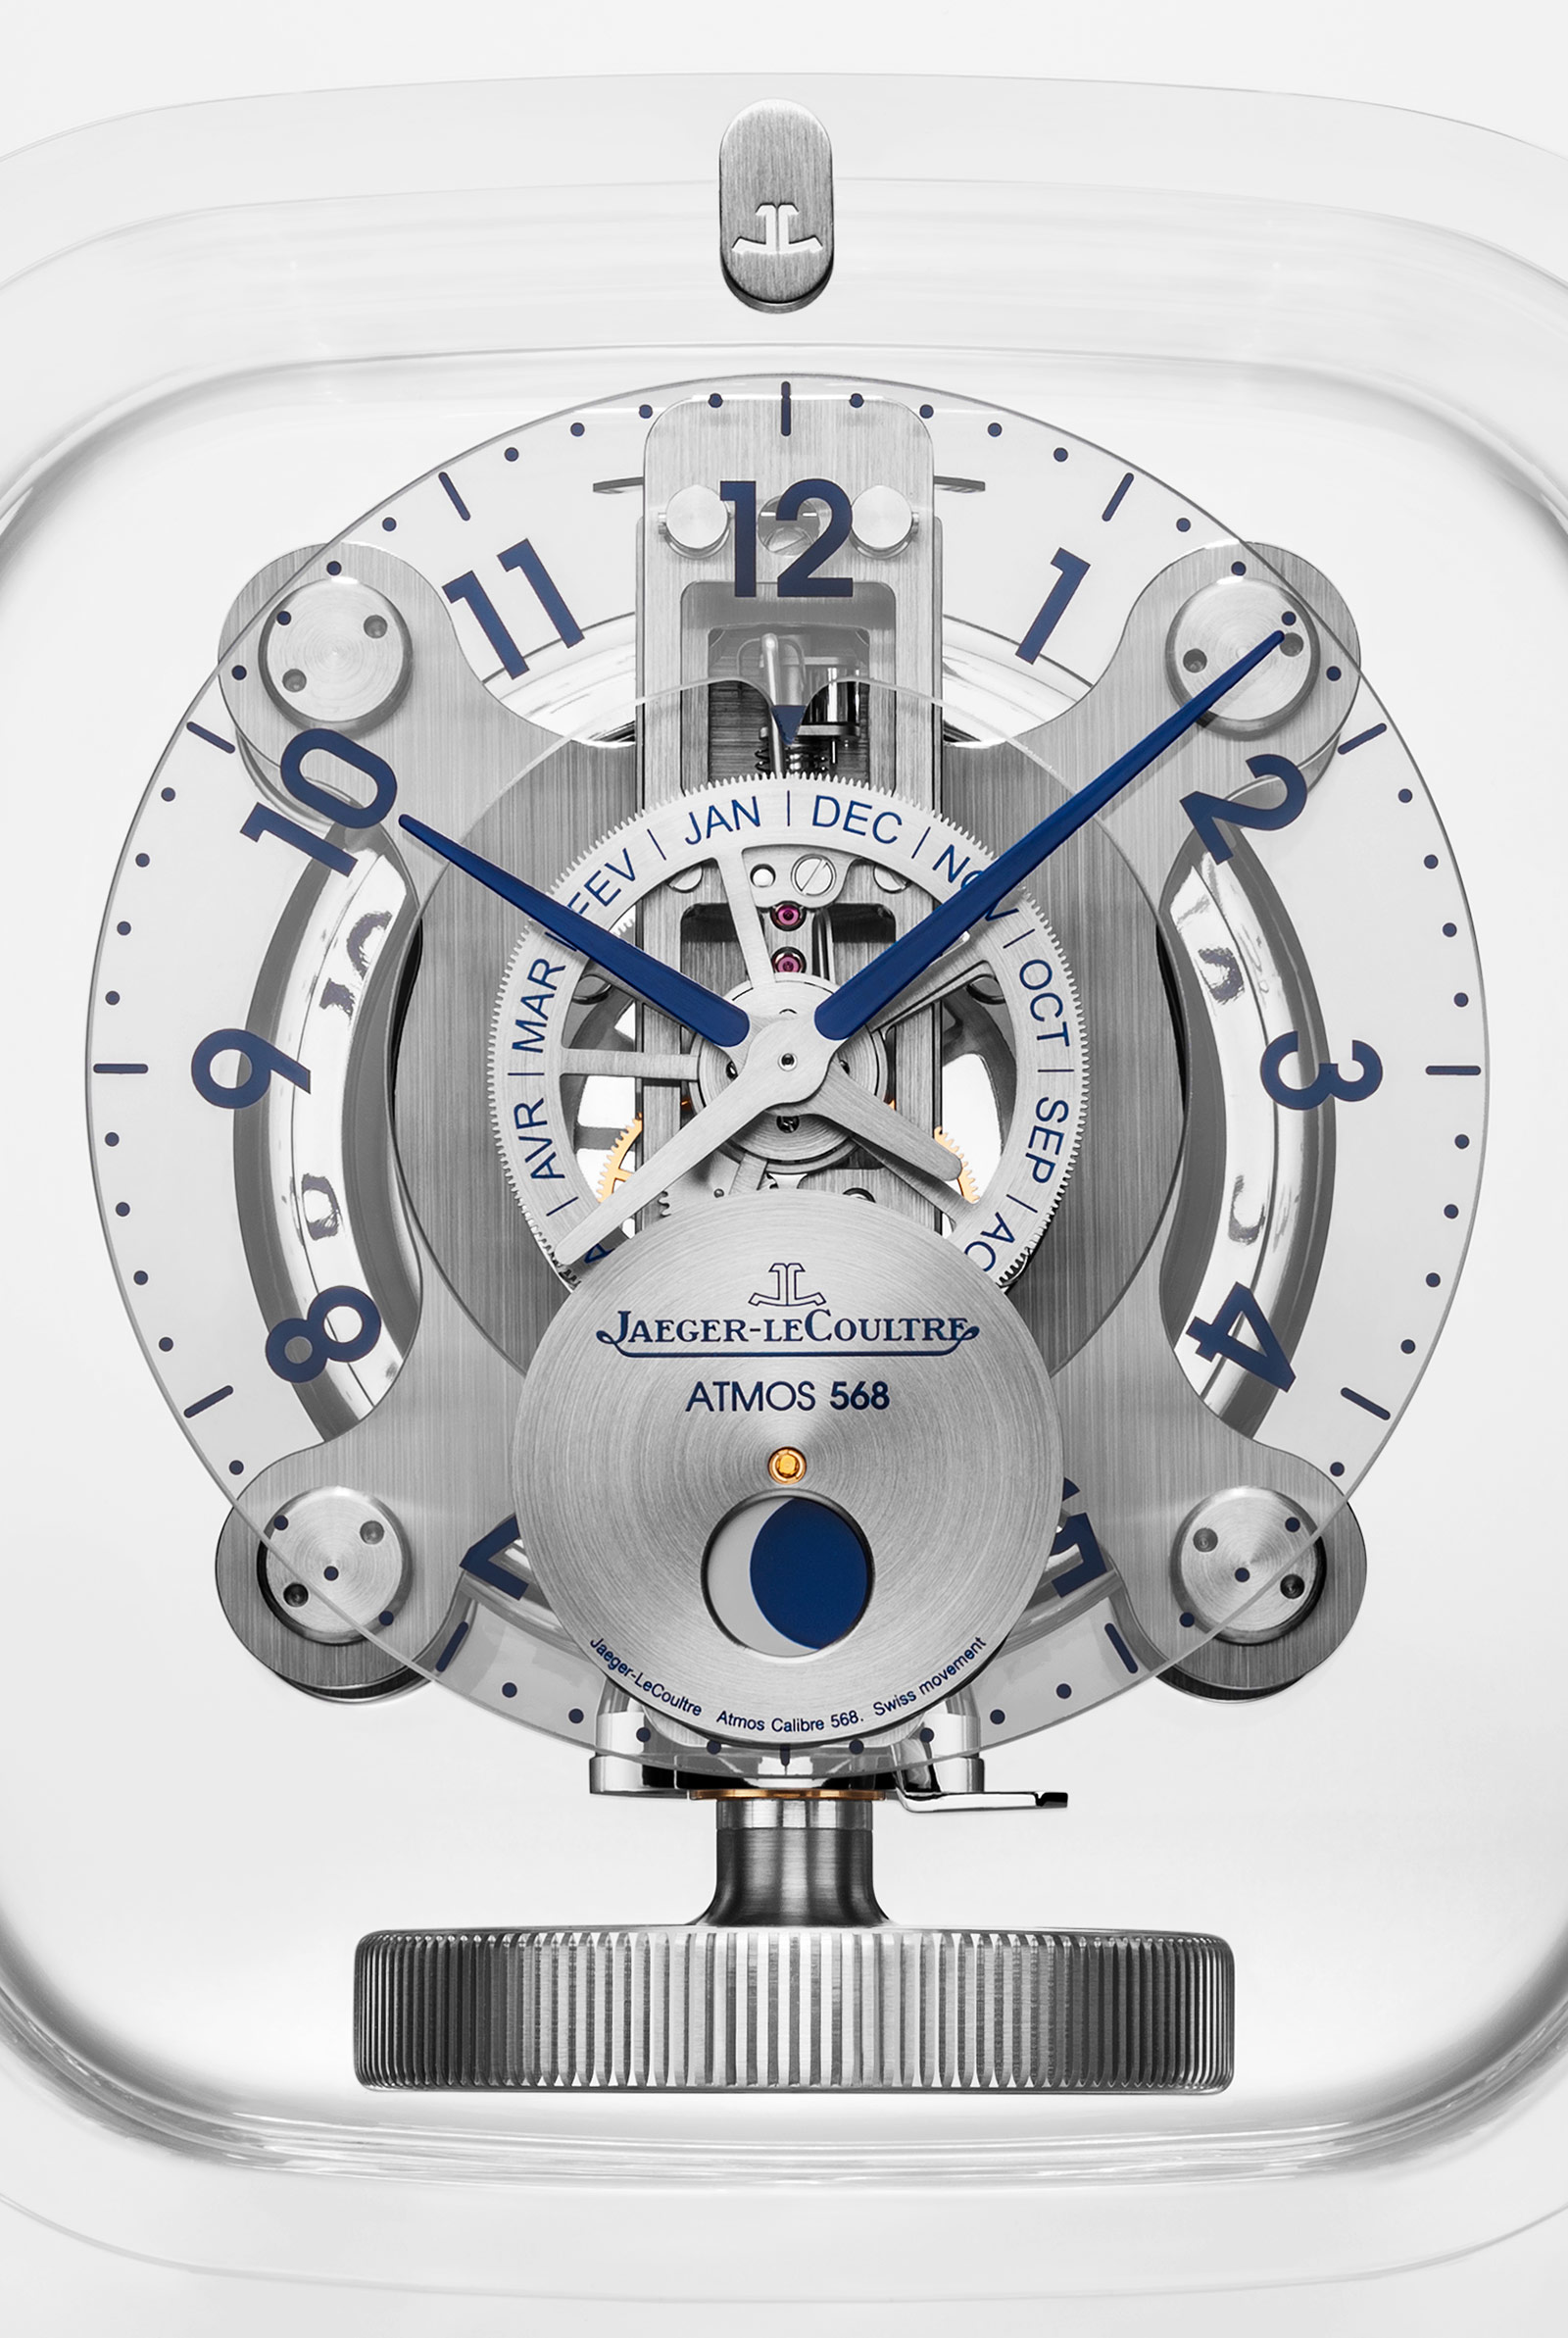 Jaeger-LeCoultre Atmos 568 Marc Newson 1